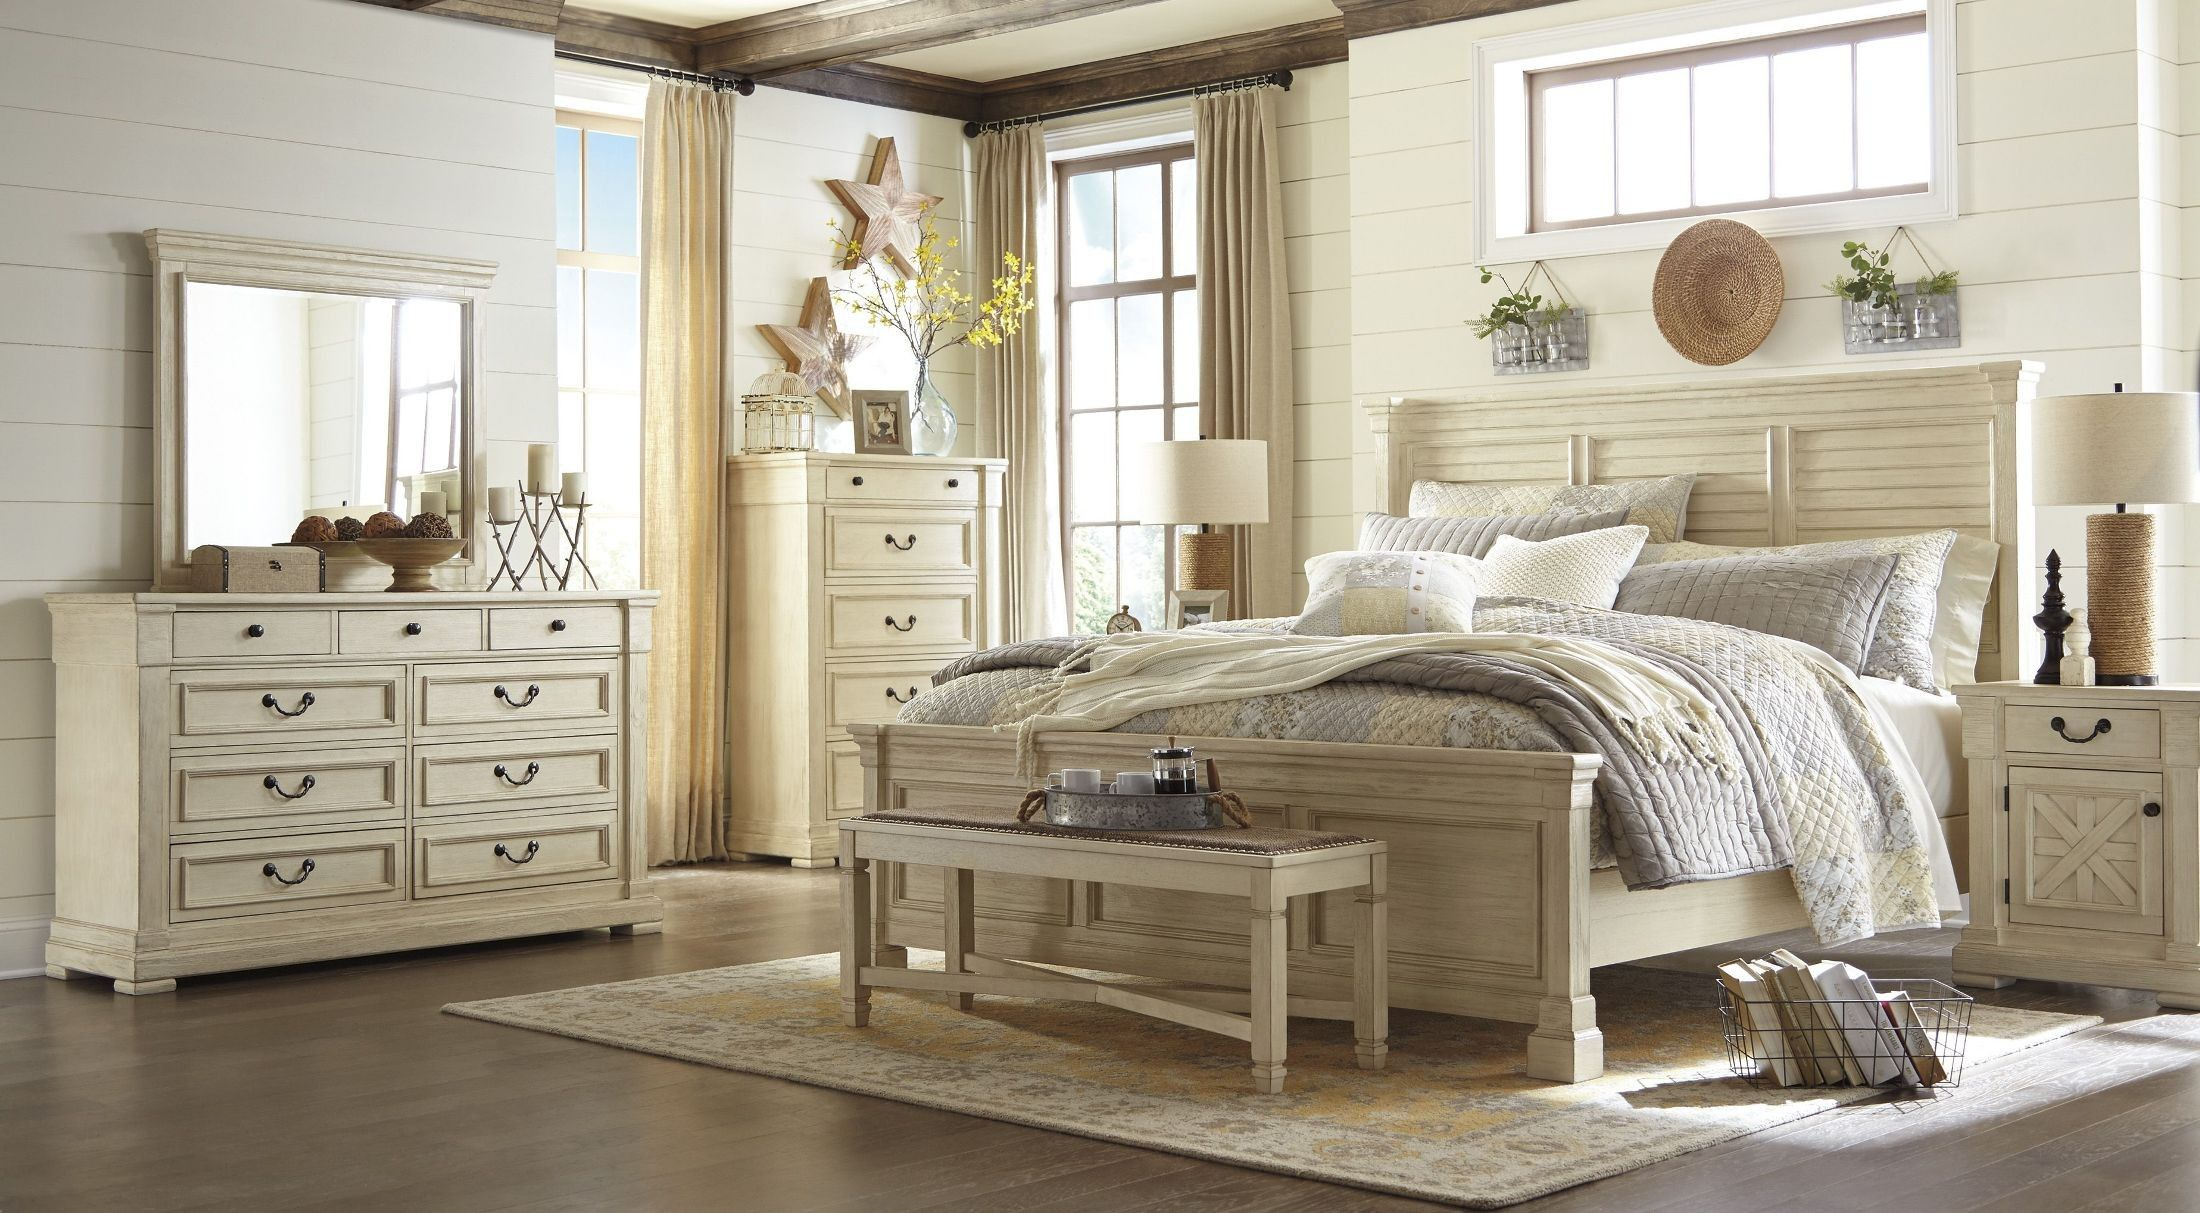 B64731364678569791D64700Q236_3_1 2200×1213 Enchanting King And Queen Bedroom Decor Inspiration